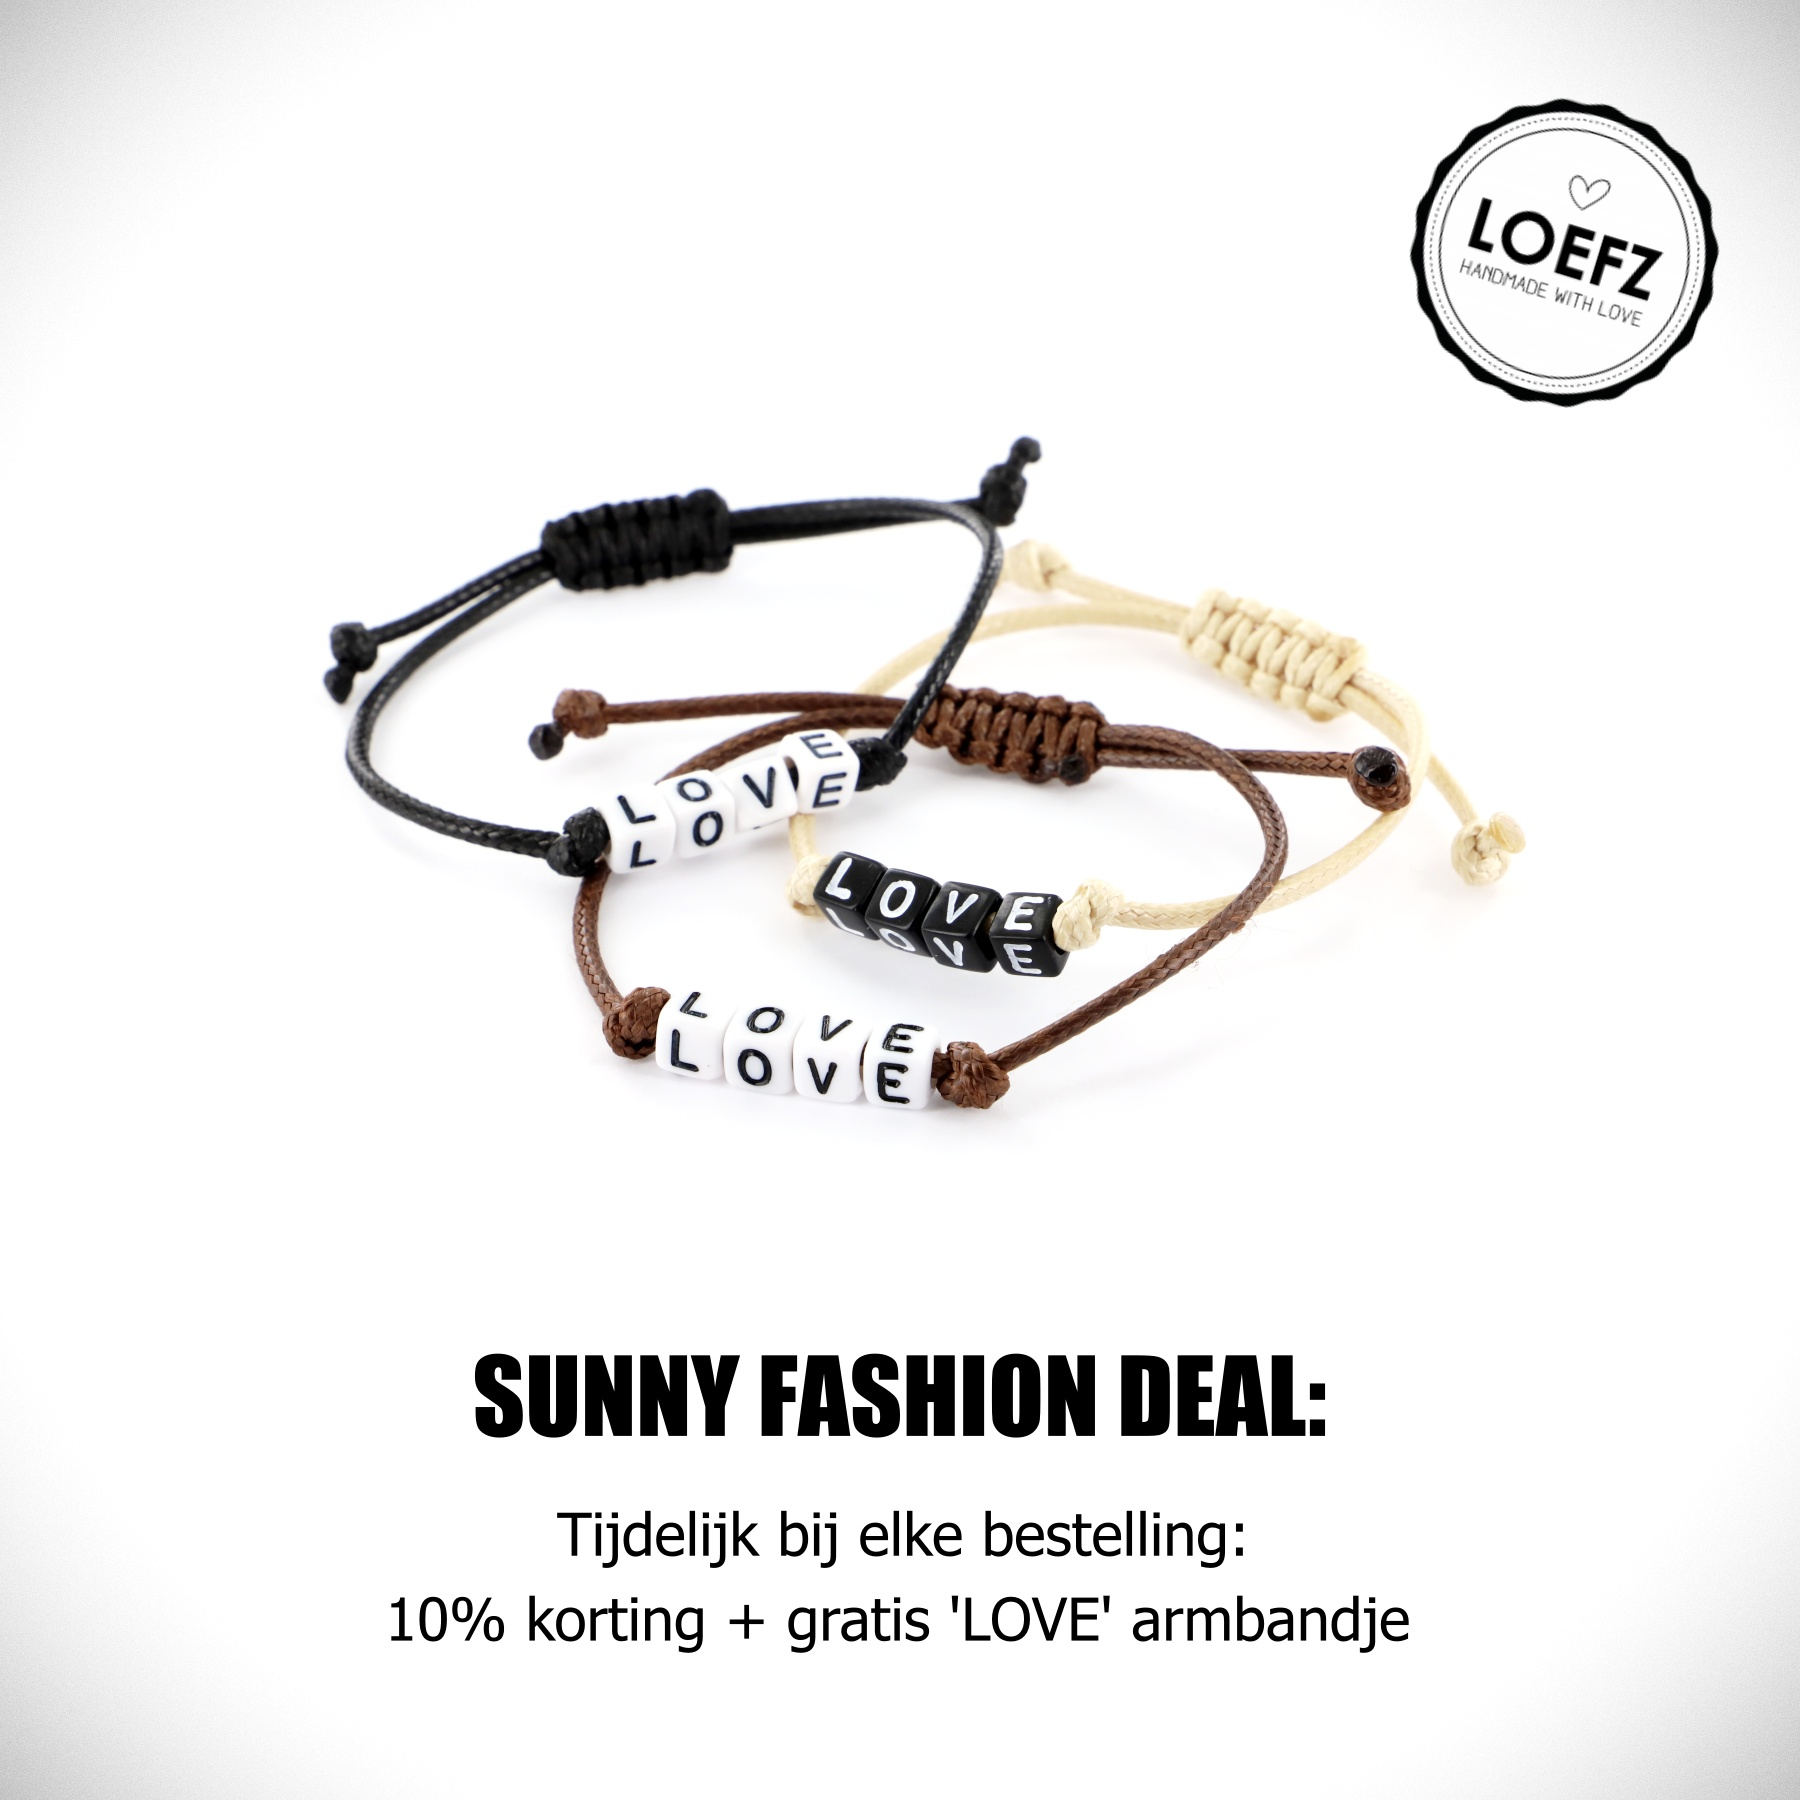 Sunny Fasion Deal